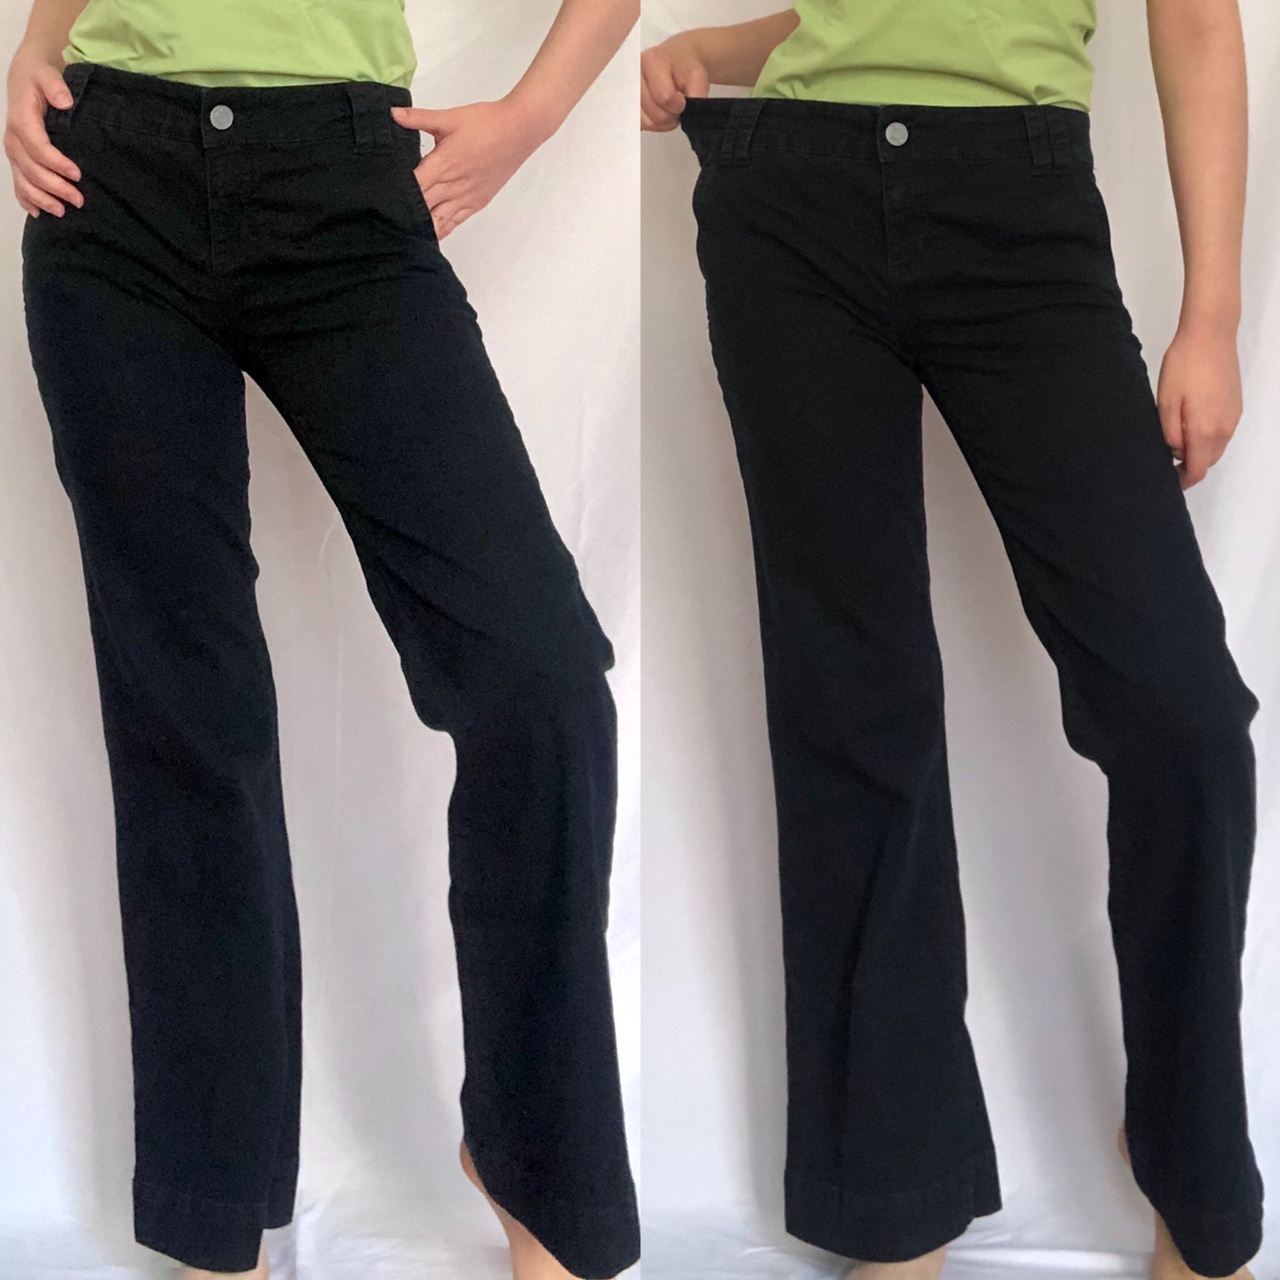 vintage Kut from the Kloth black midrise flare jeans